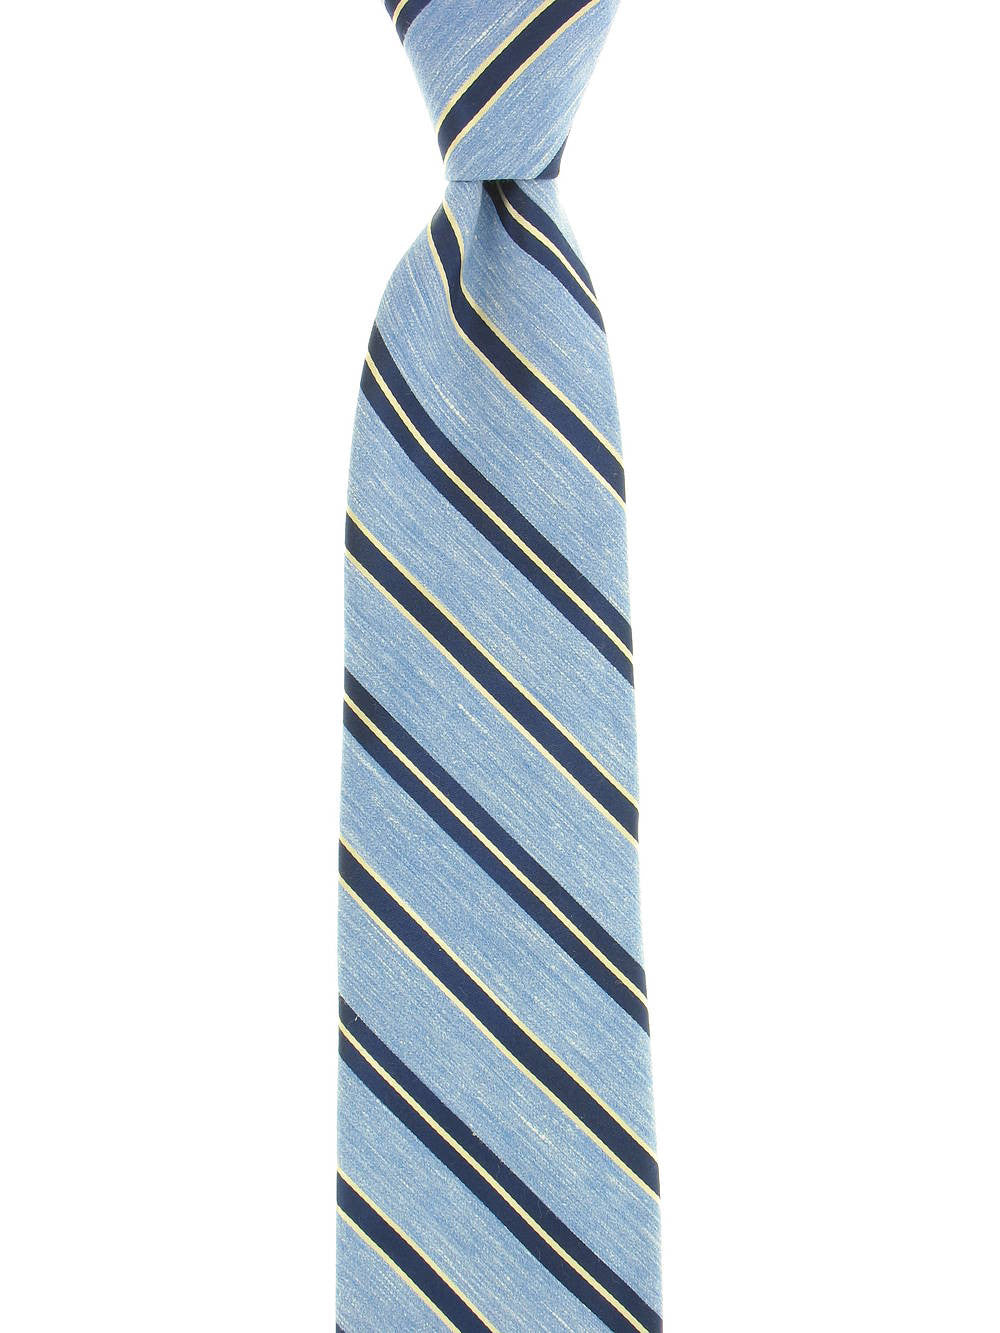 Michelsons of London Mens Light Blue Striped Tie